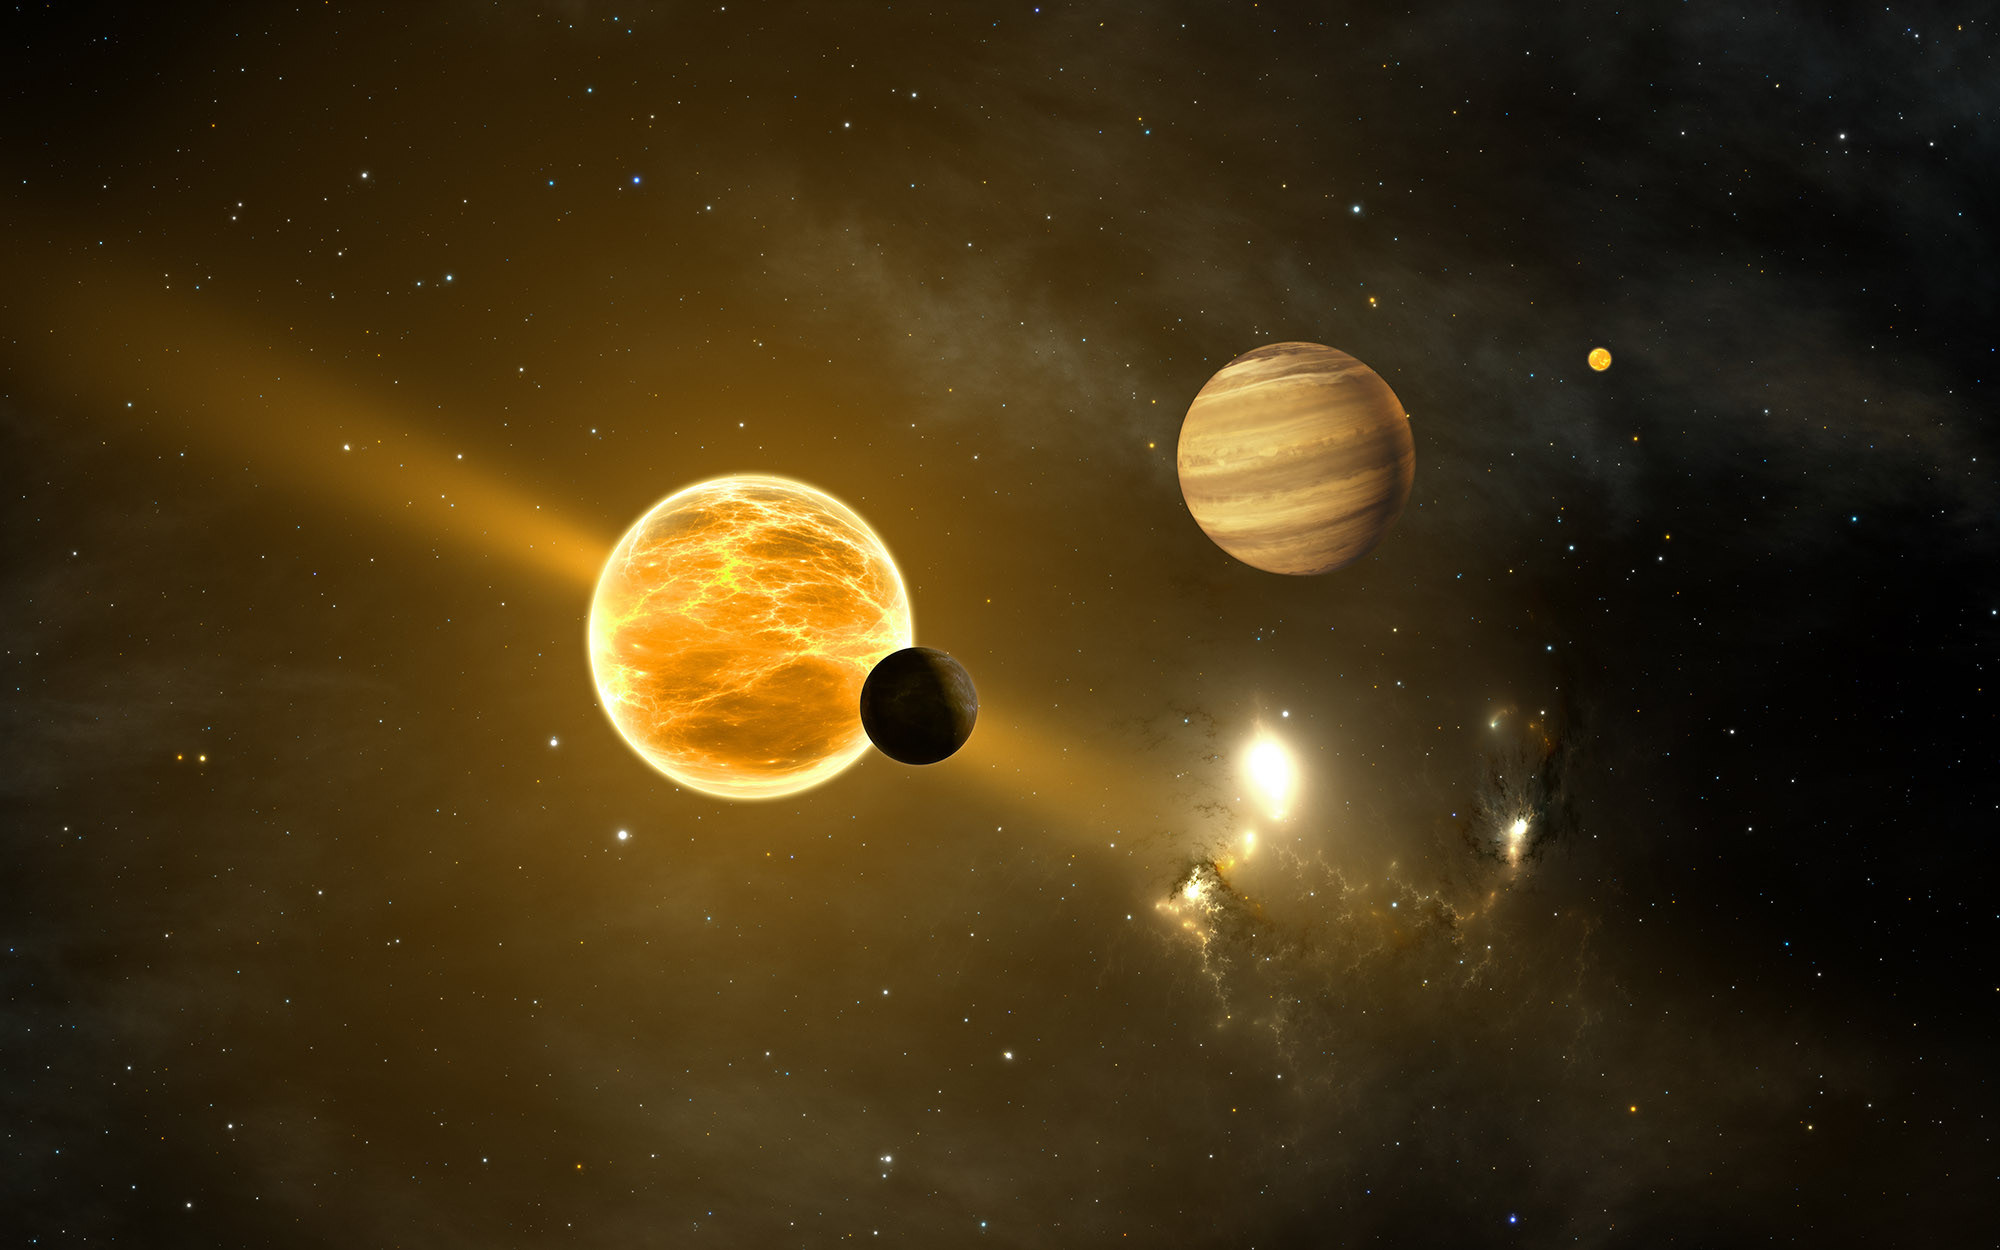 Exoplanets and the Kepler Space Telescope – Part II